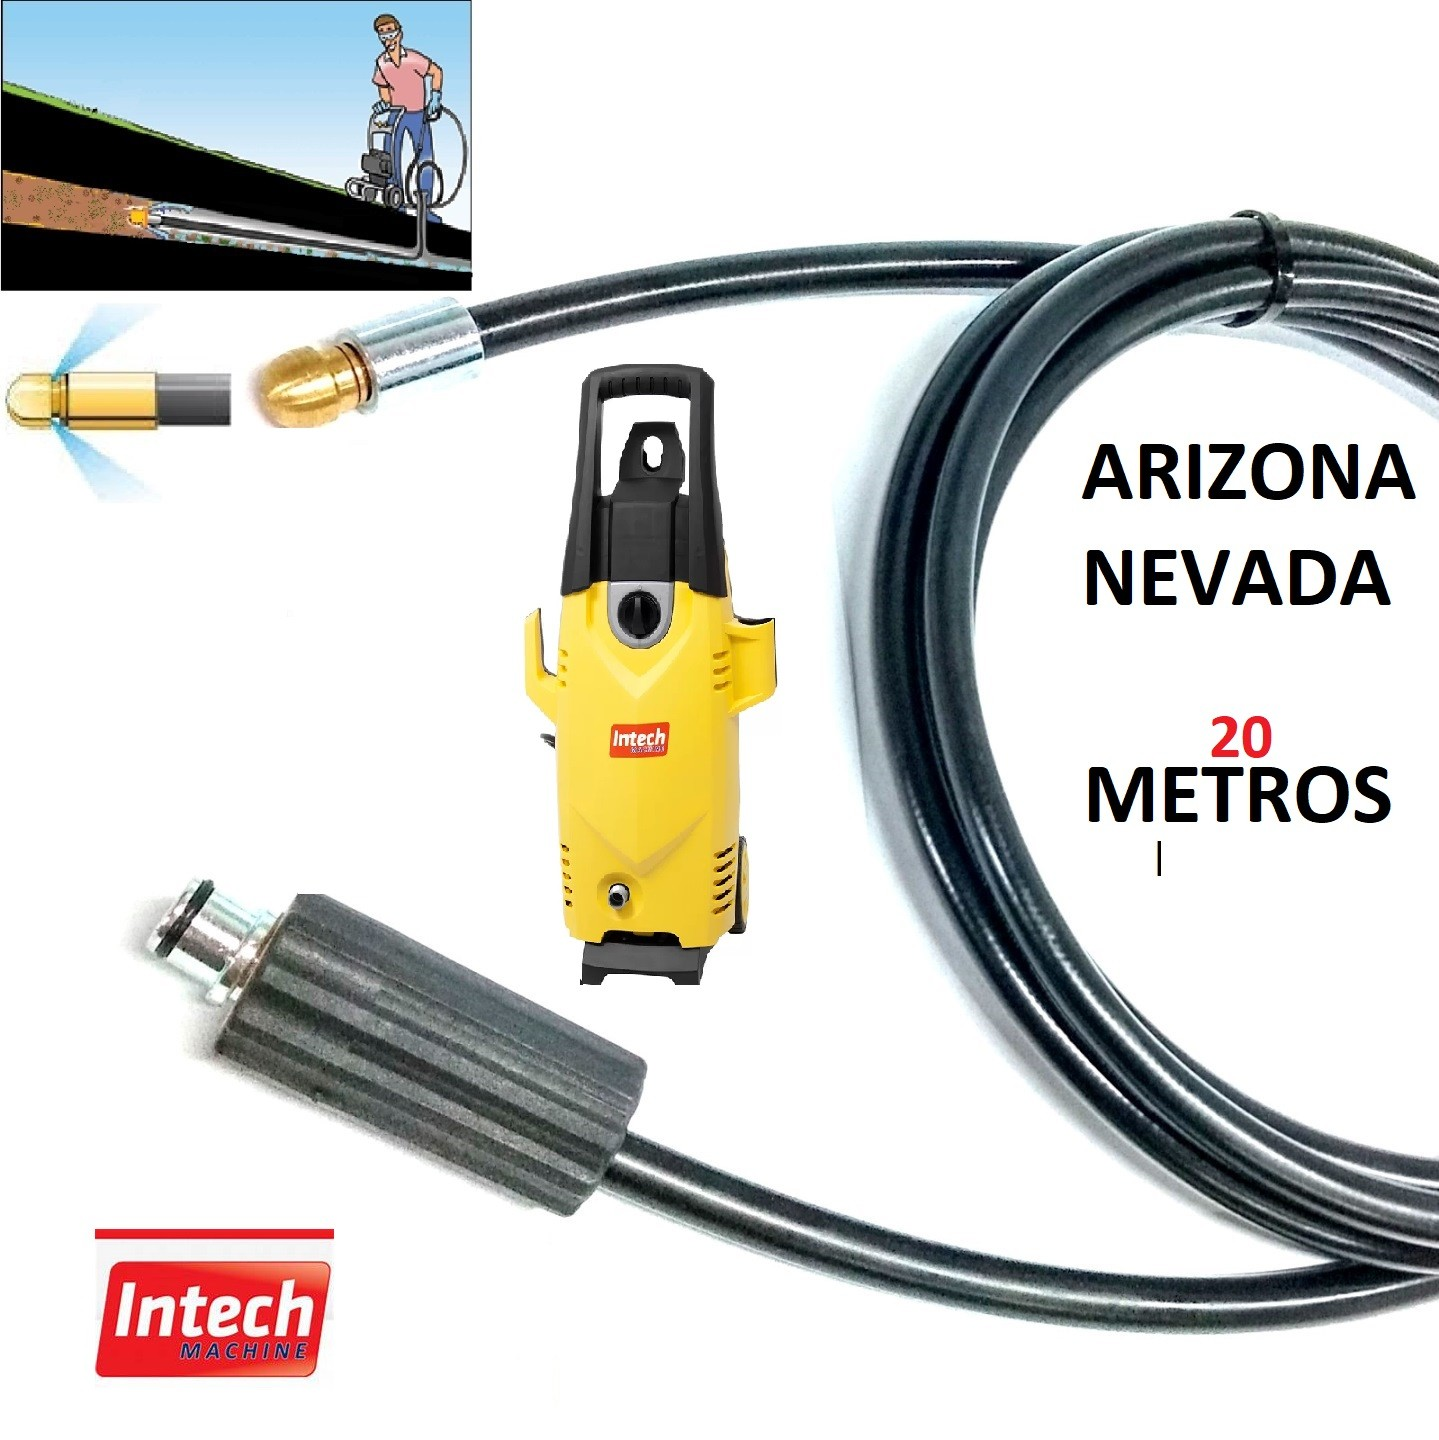 Mangueira Desentupidora Esgoto 20 Metros ARIZONA,NEVADA Intech Machine